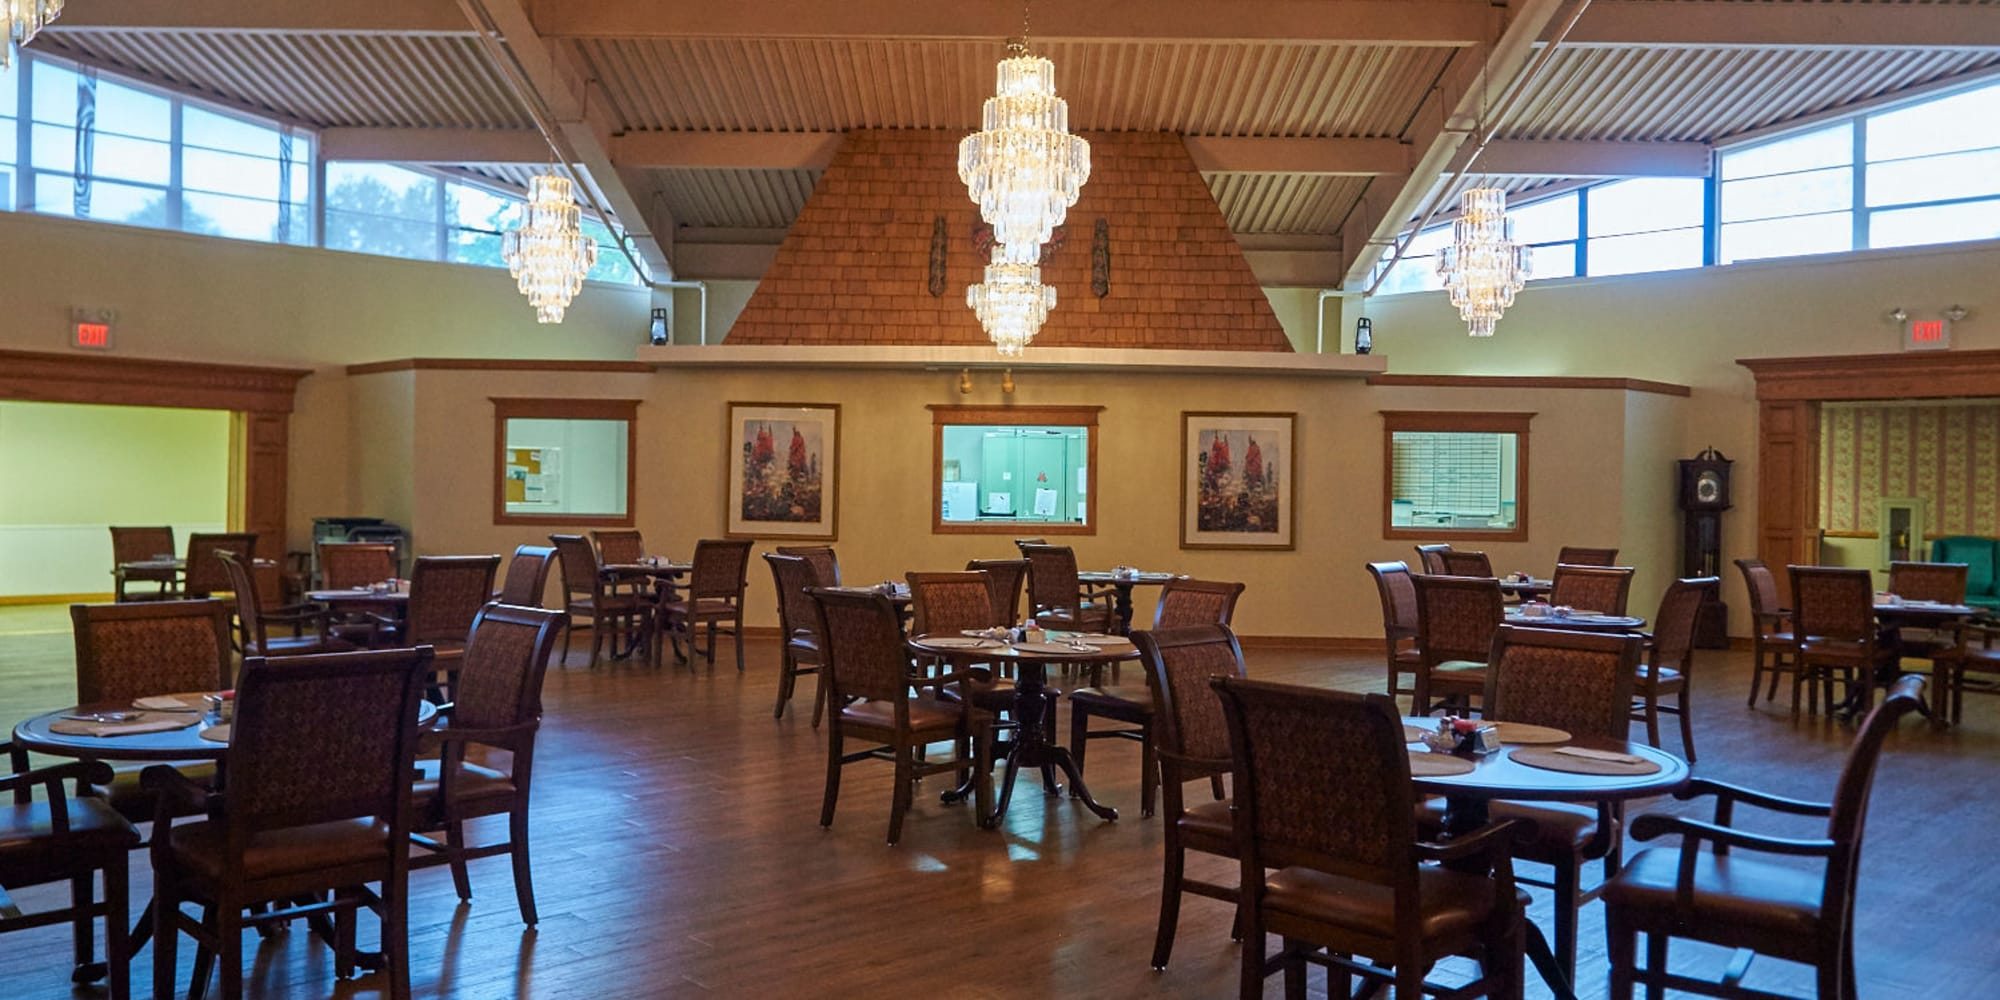 Dining room at Clearview Lantern Suites in Warren, Ohio.